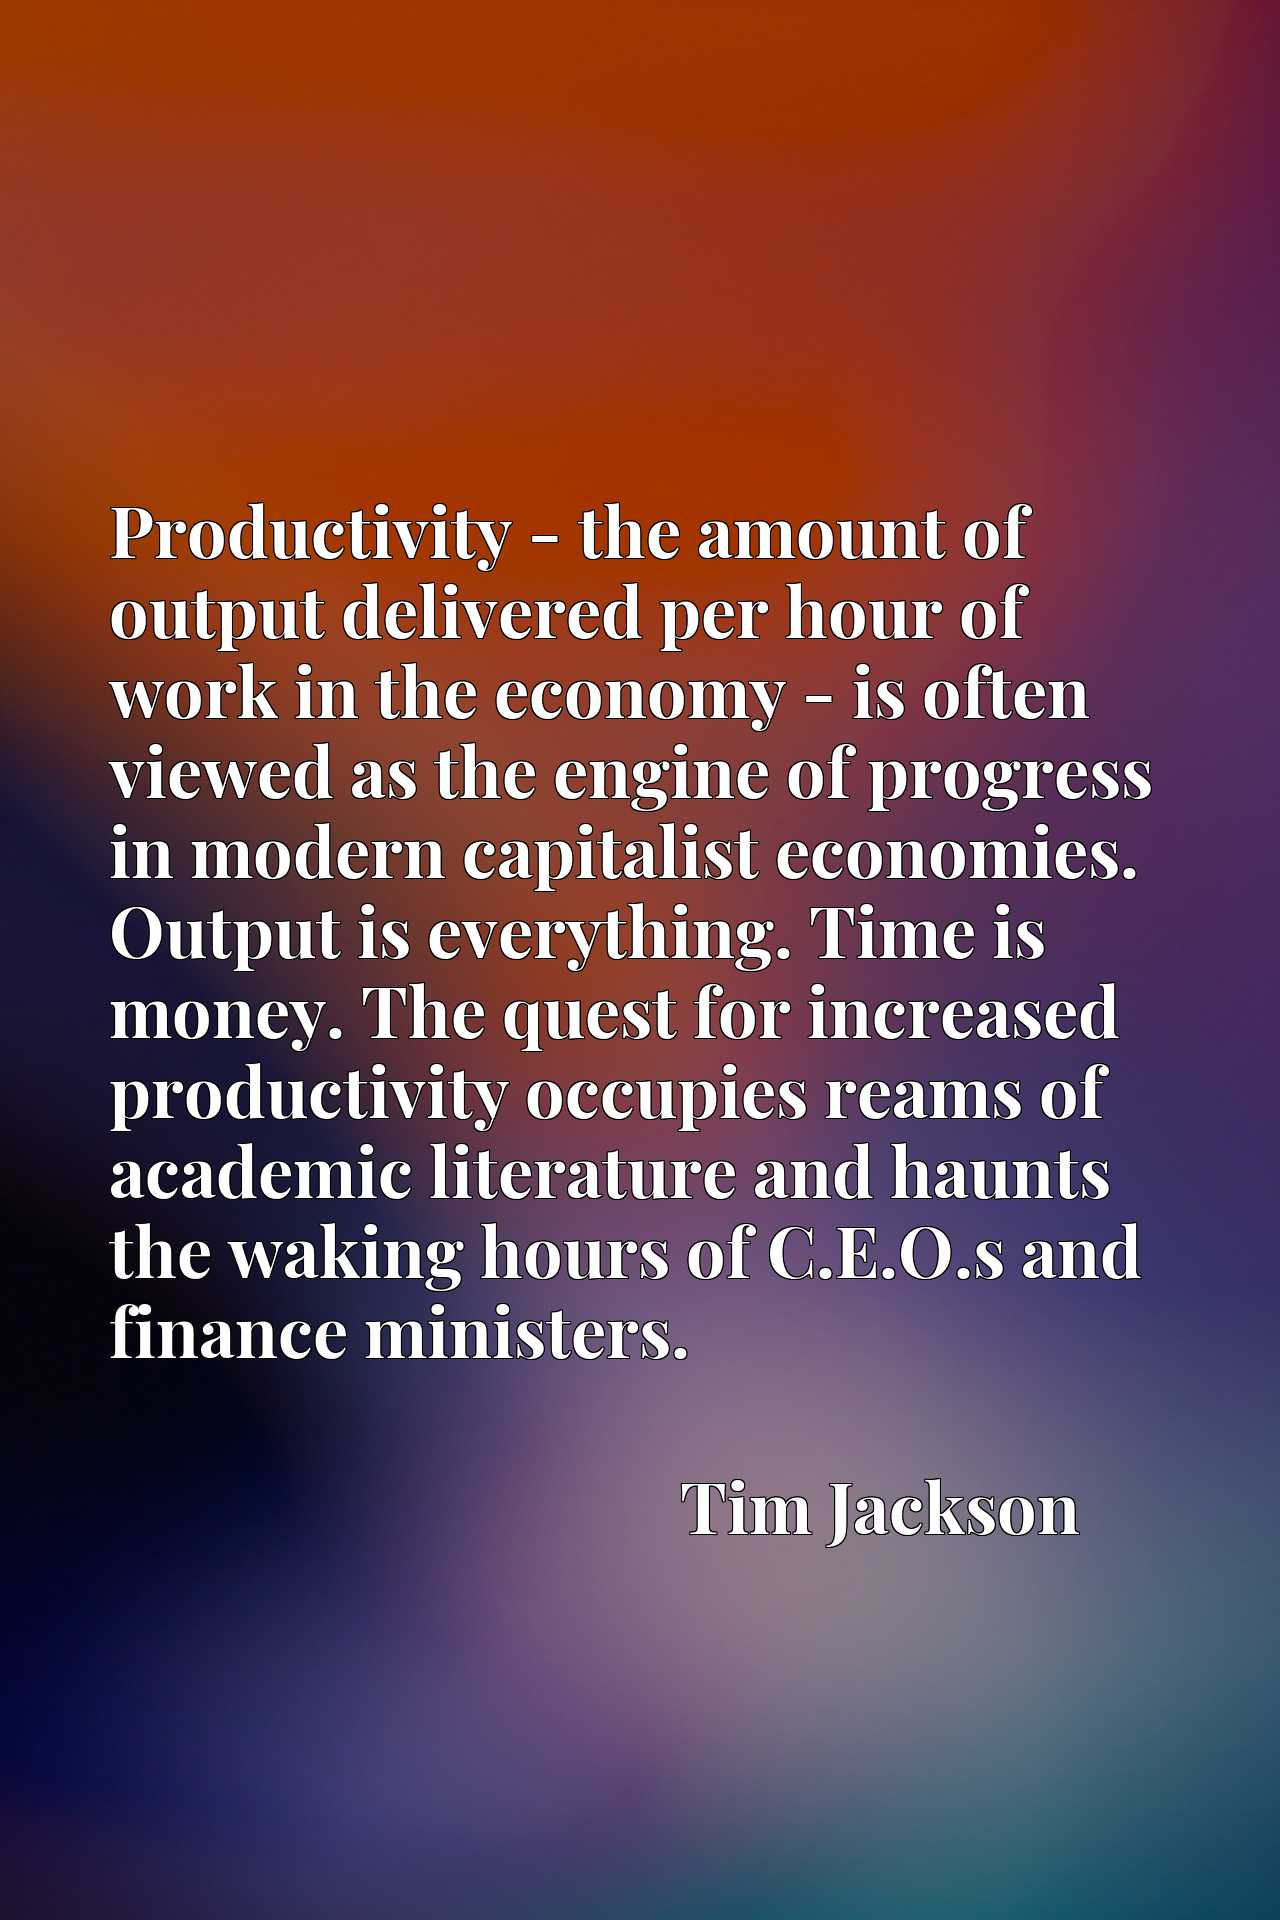 Productivity - the amount of output delivered per hour of work in the economy - is often viewed as the engine of progress in modern capitalist economies. Output is everything. Time is money. The quest for increased productivity occupies reams of academic literature and haunts the waking hours of C.E.O.s and finance ministers.